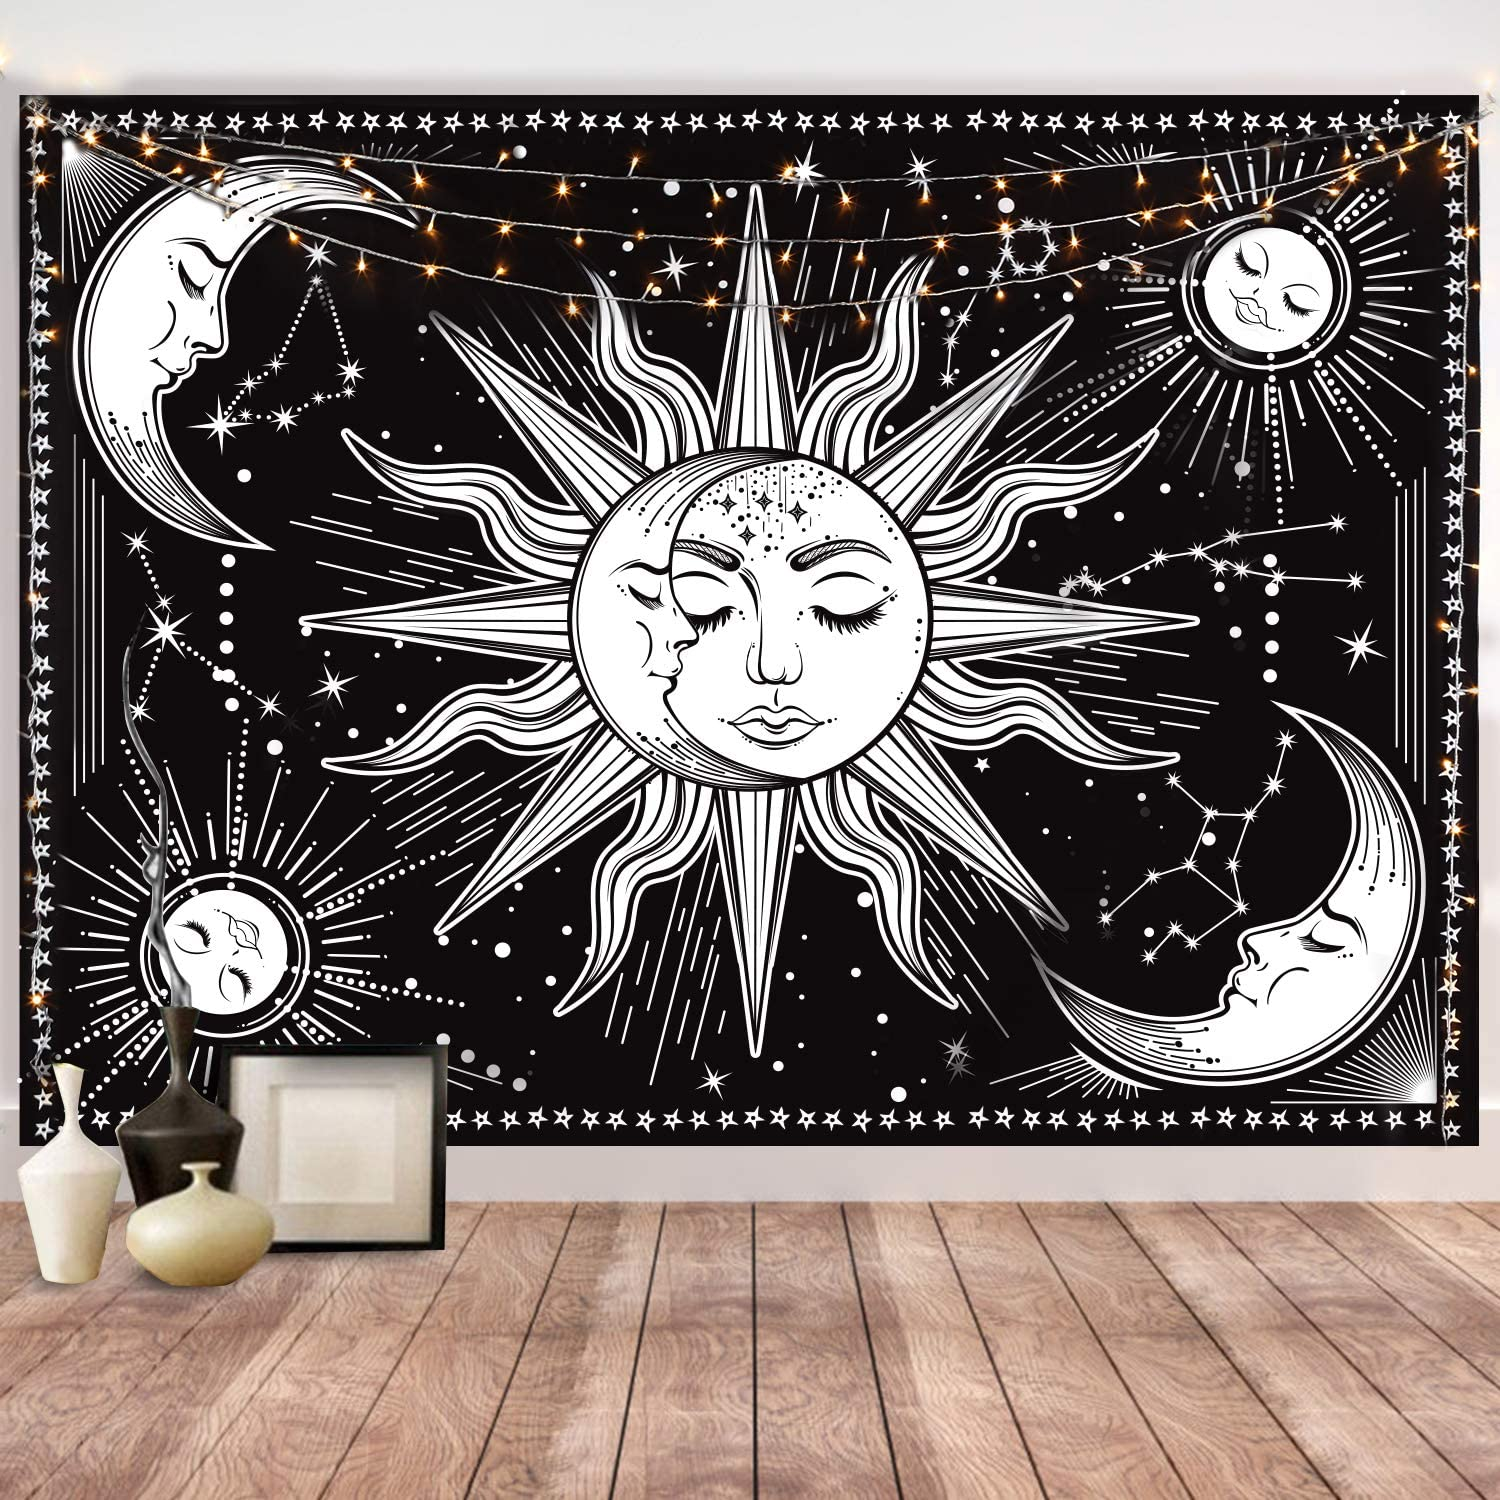 HOTMIR High quality Wall Tapestry Black and Award White - H Aesthetic